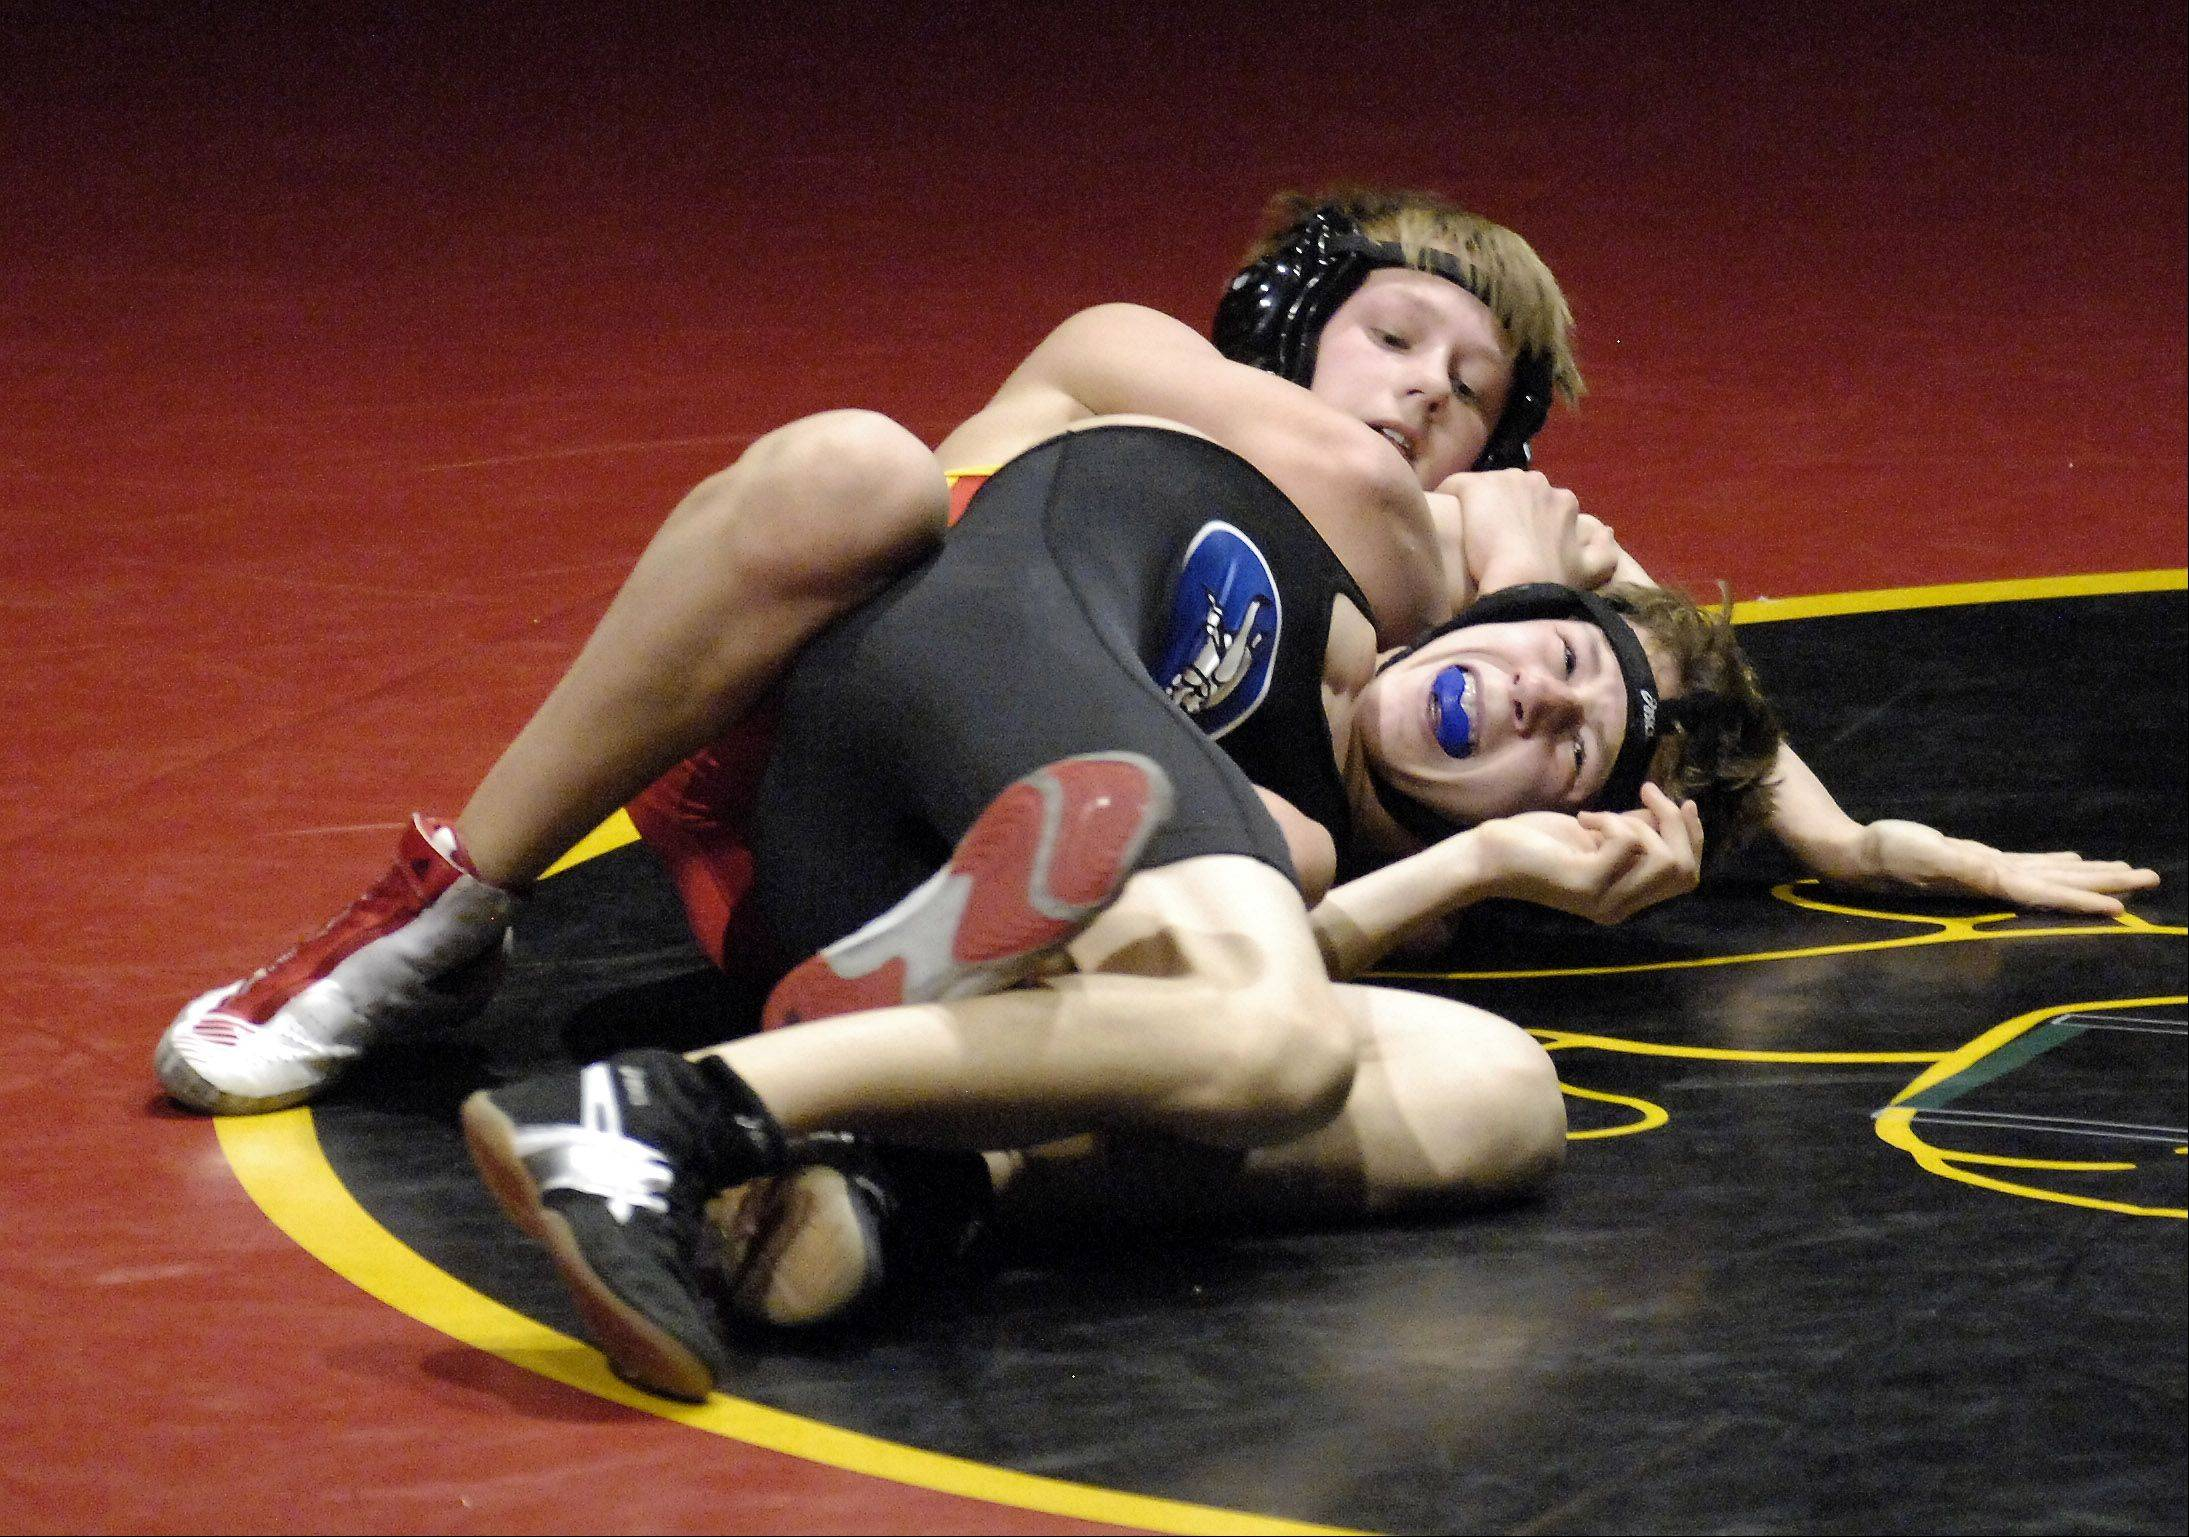 Batavia's Luke Schulz defeated Geneva's Julian Dessens at 113-pound match Thursday in Batavia.